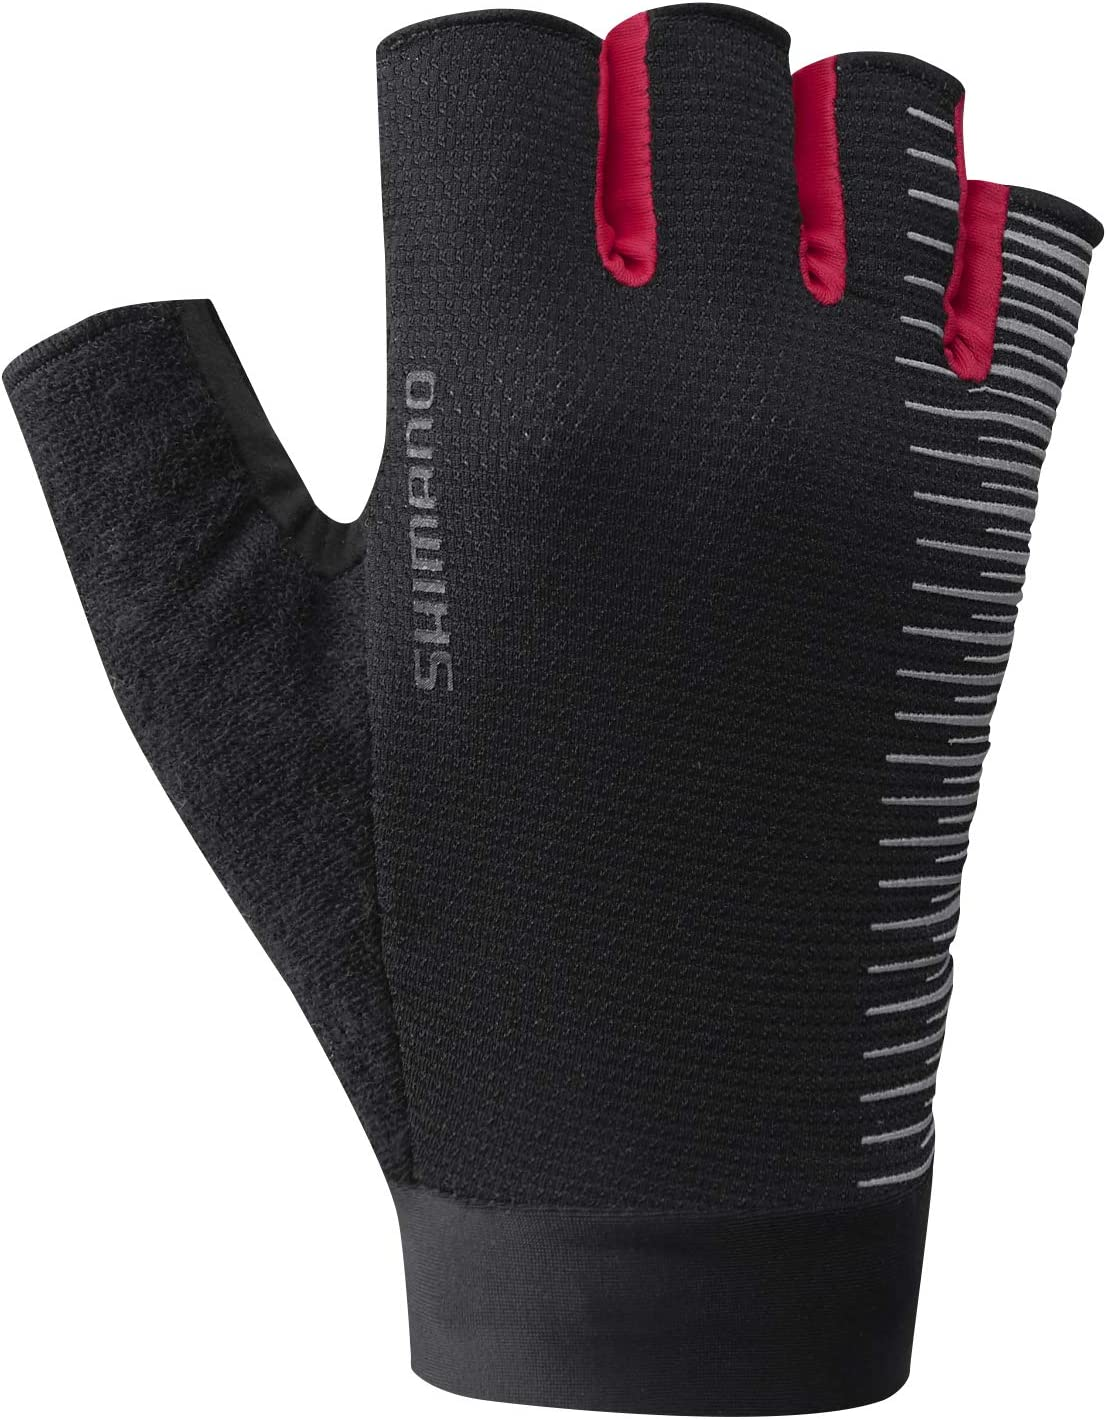 Shimano Clothing Now free shipping Unisex's SCA44321 Sma 100% quality warranty Red Transport Storage